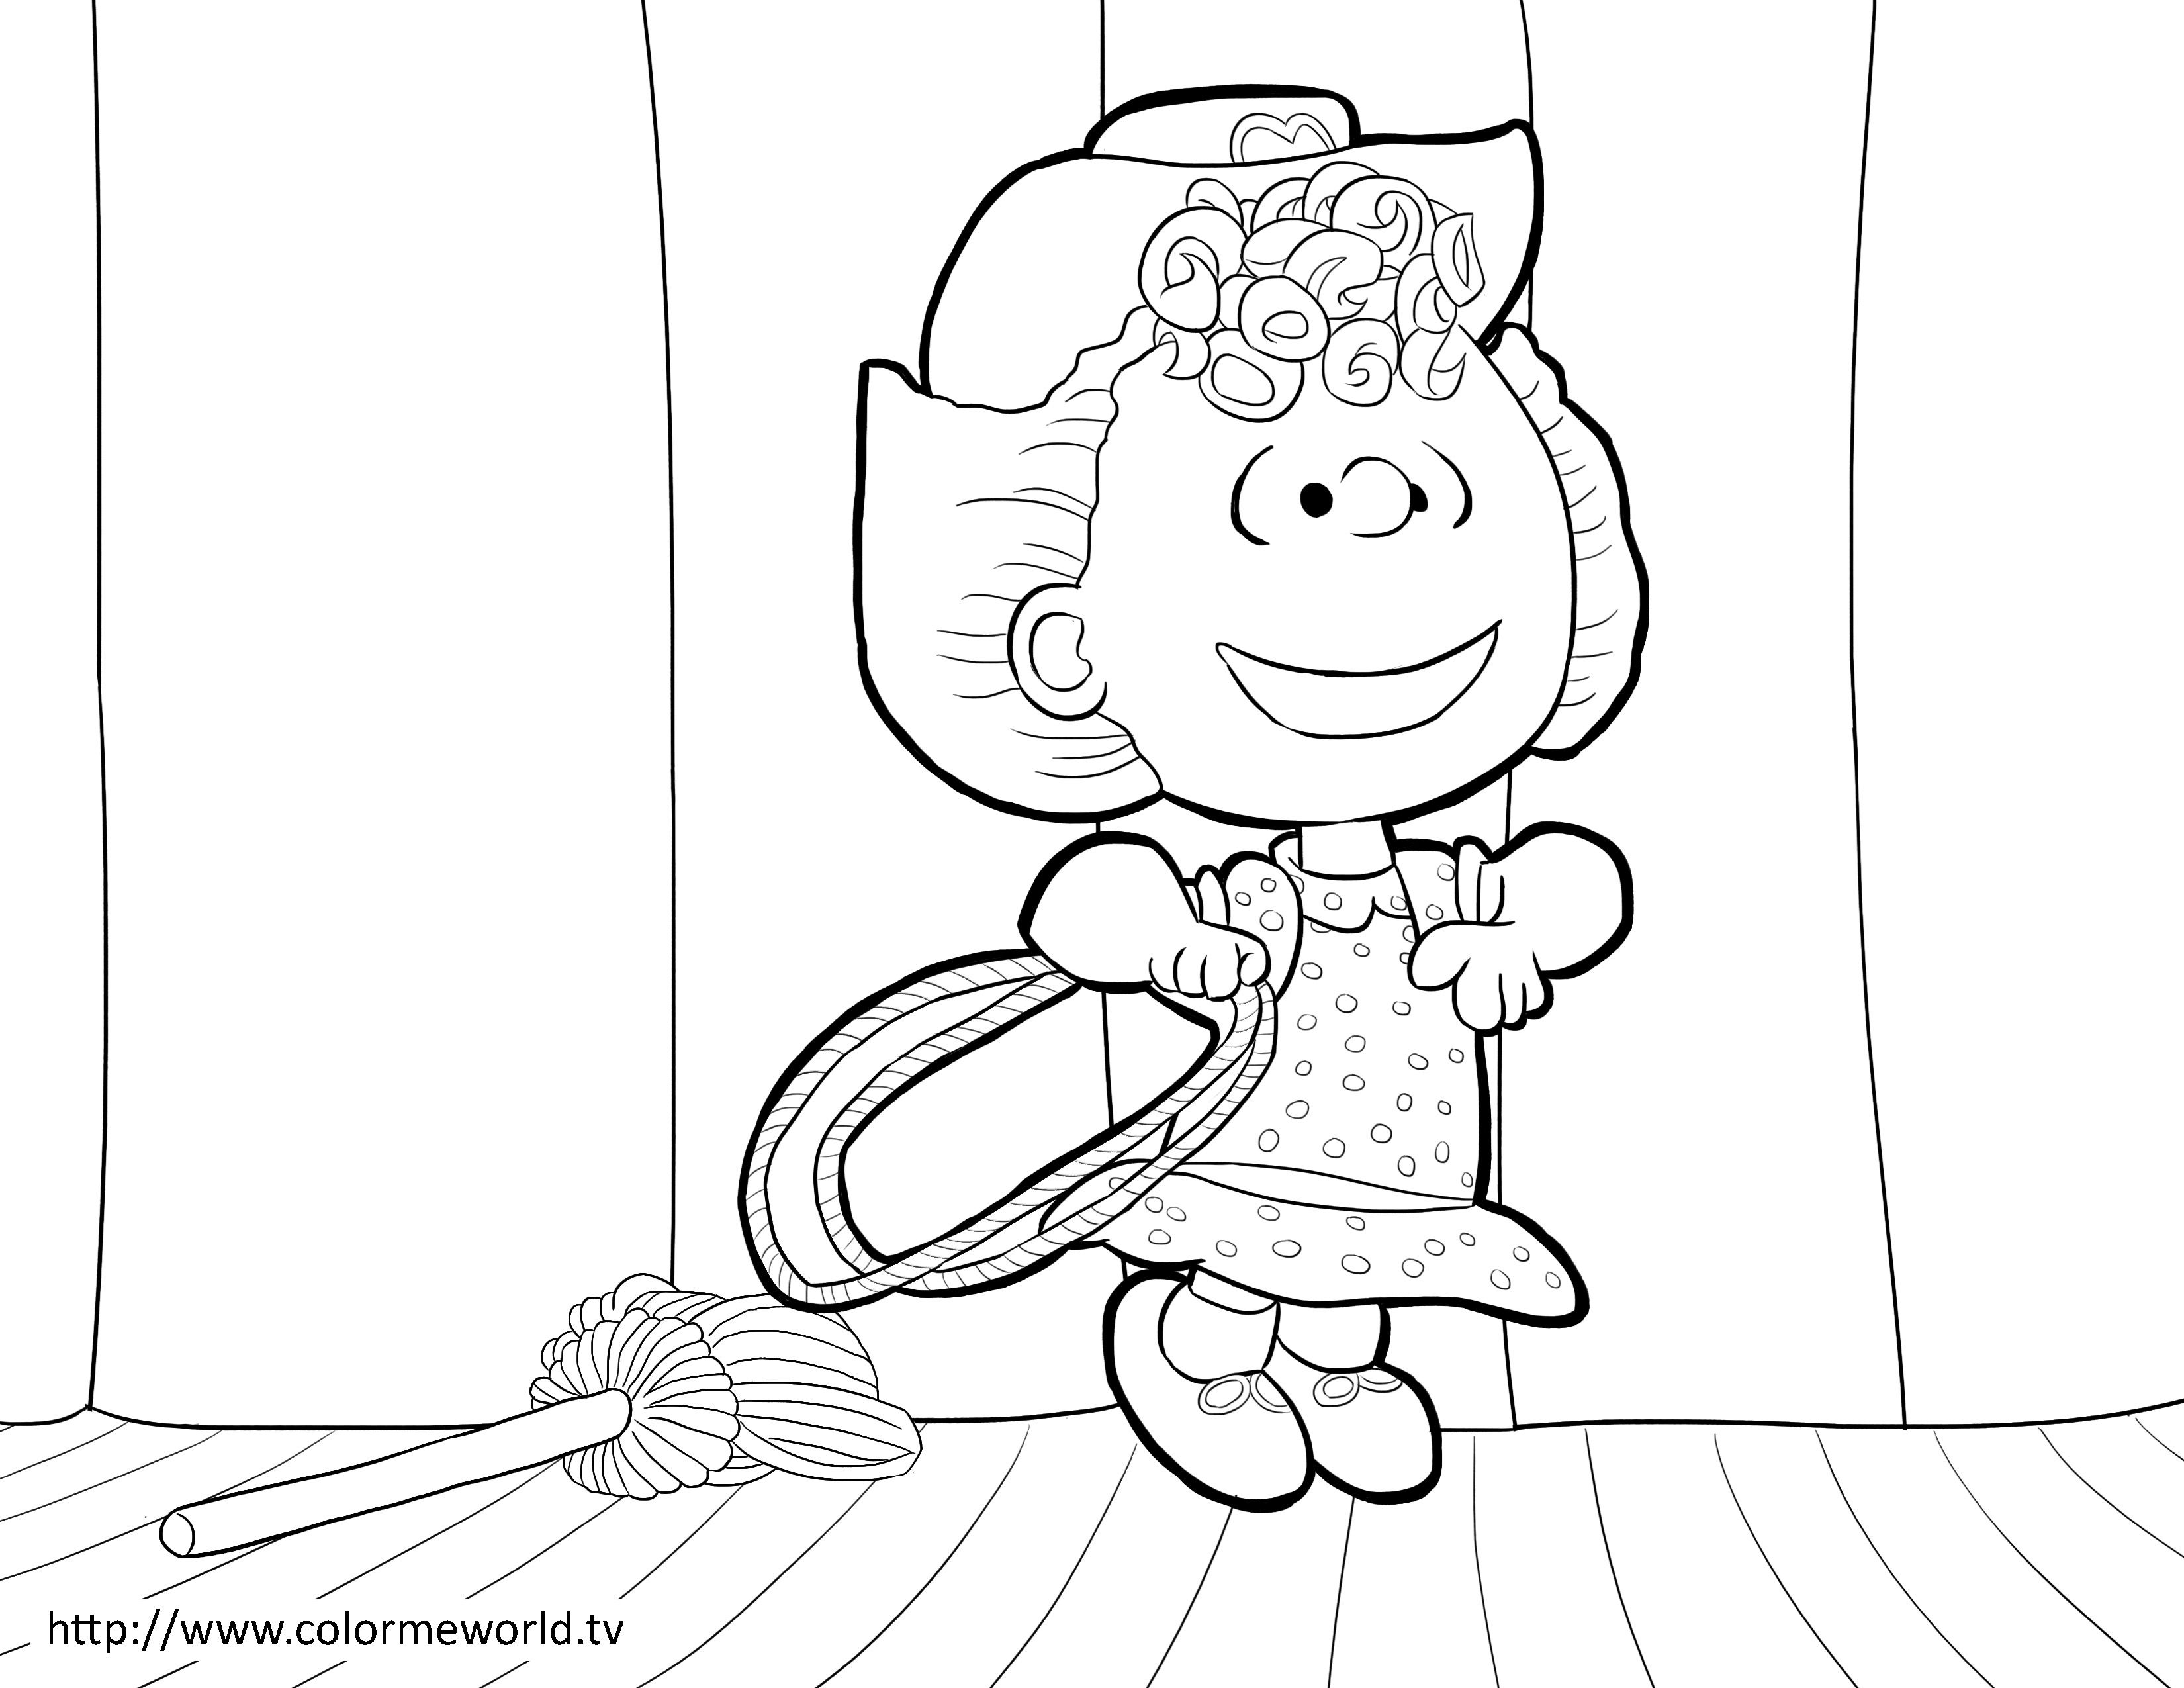 Sally Brown Pdf Printable Coloring Page Peanuts Coloring Pages Quote Coloring Pages Printable Coloring Pages